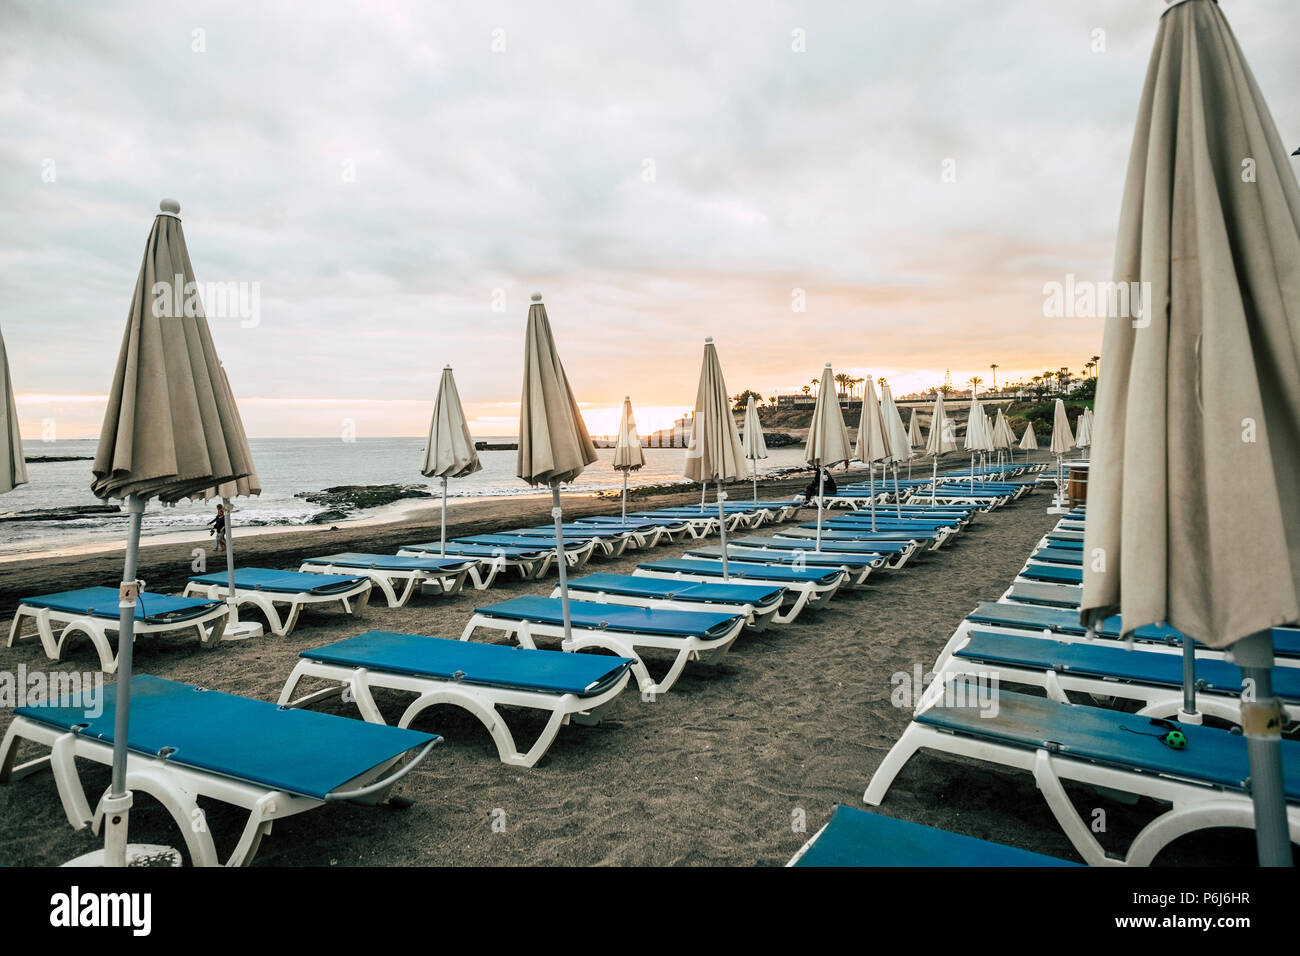 umbrellas and seats in closed business at the beach after a day full of sun and vacation outdoor leisure concept. colors and relaxed time in sunset sk - Stock Image